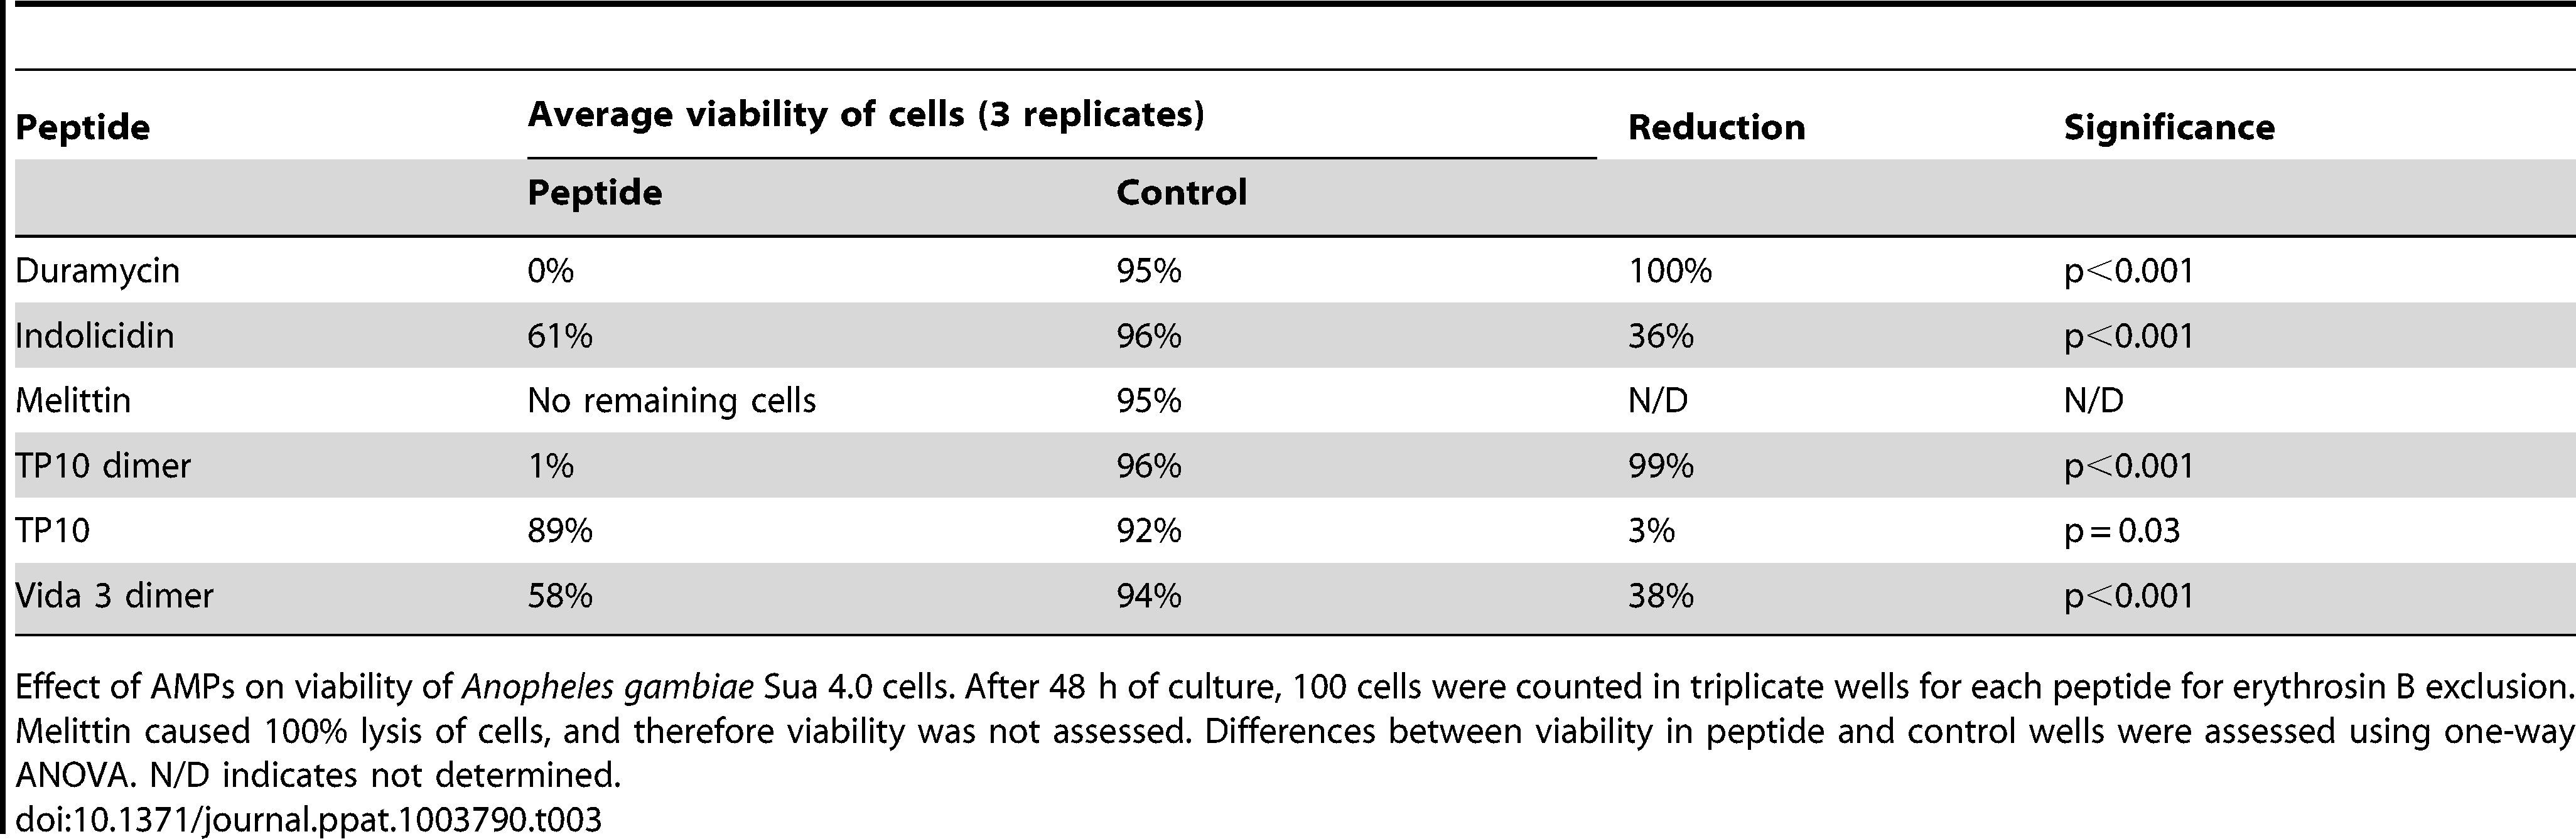 Effects of AMPs on <i>Anopheles gambiae</i> Sua 4.0 cell viability after 48 hrs.